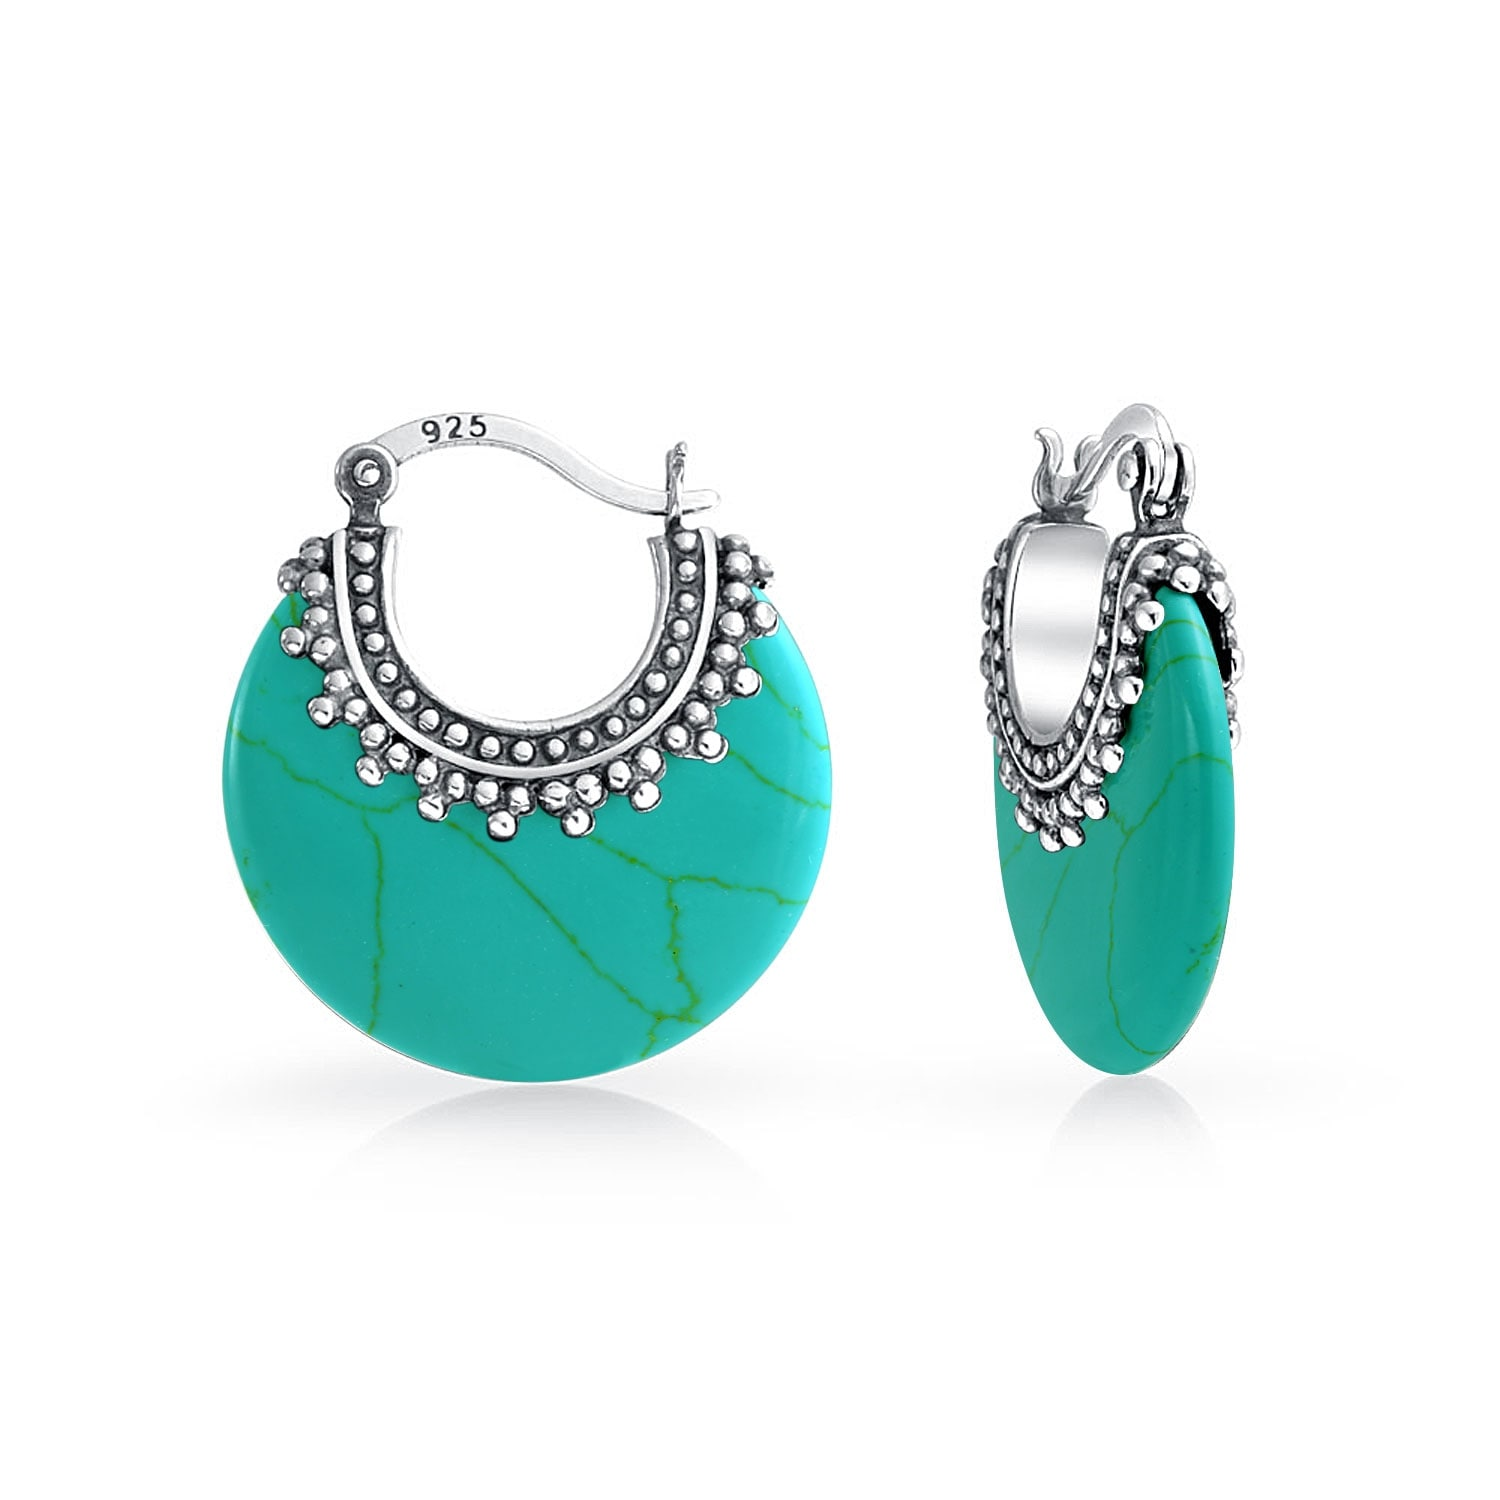 63207d82b Shop Bali Style Tribal Enhanced Turquoise Boho Crescent Hoop Earrings For  Women Oxidized Caviar Bead 925 Sterling Silver - On Sale - Free Shipping On  Orders ...